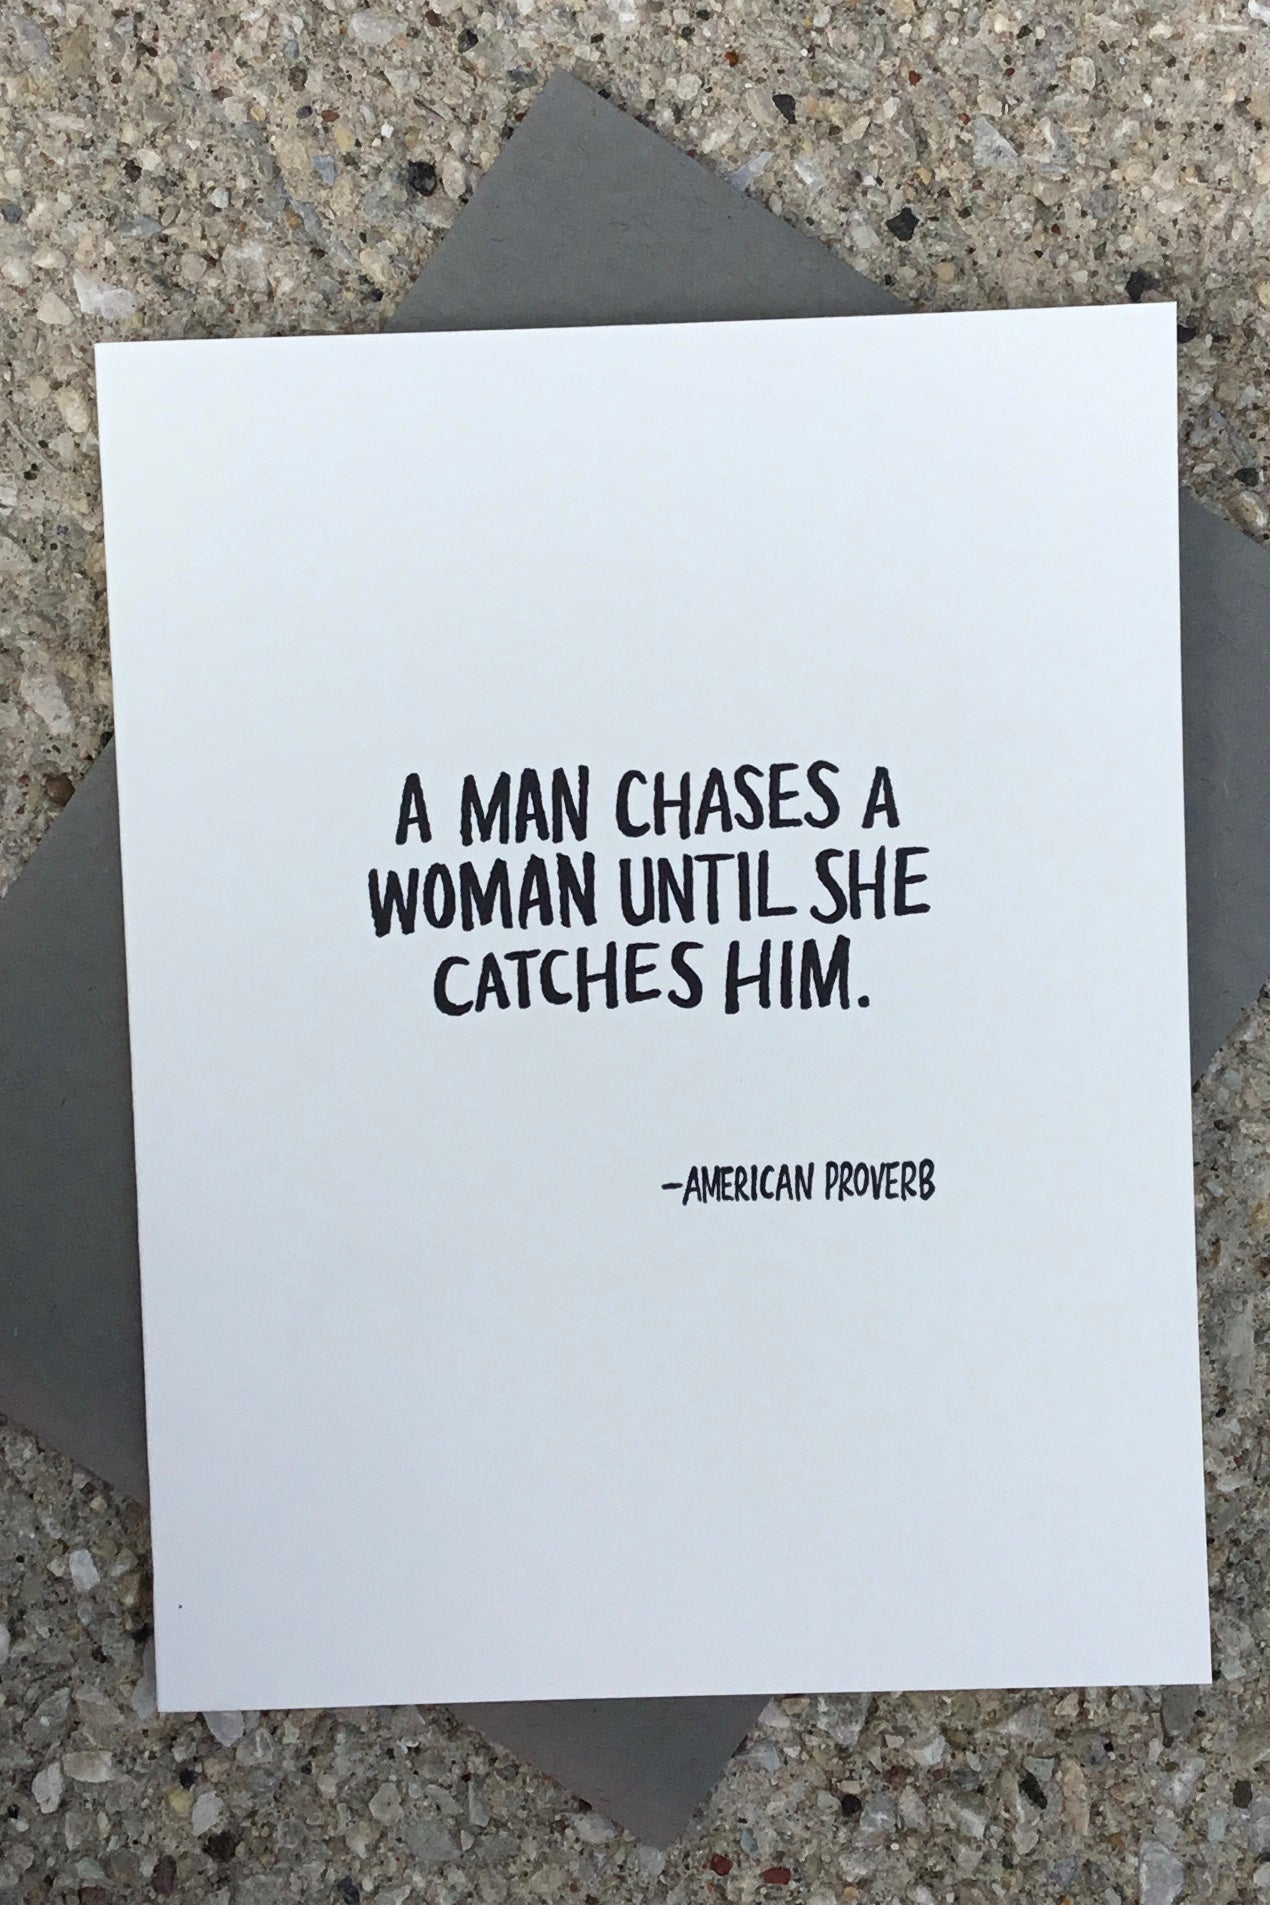 Chases woman a a man when The Simple